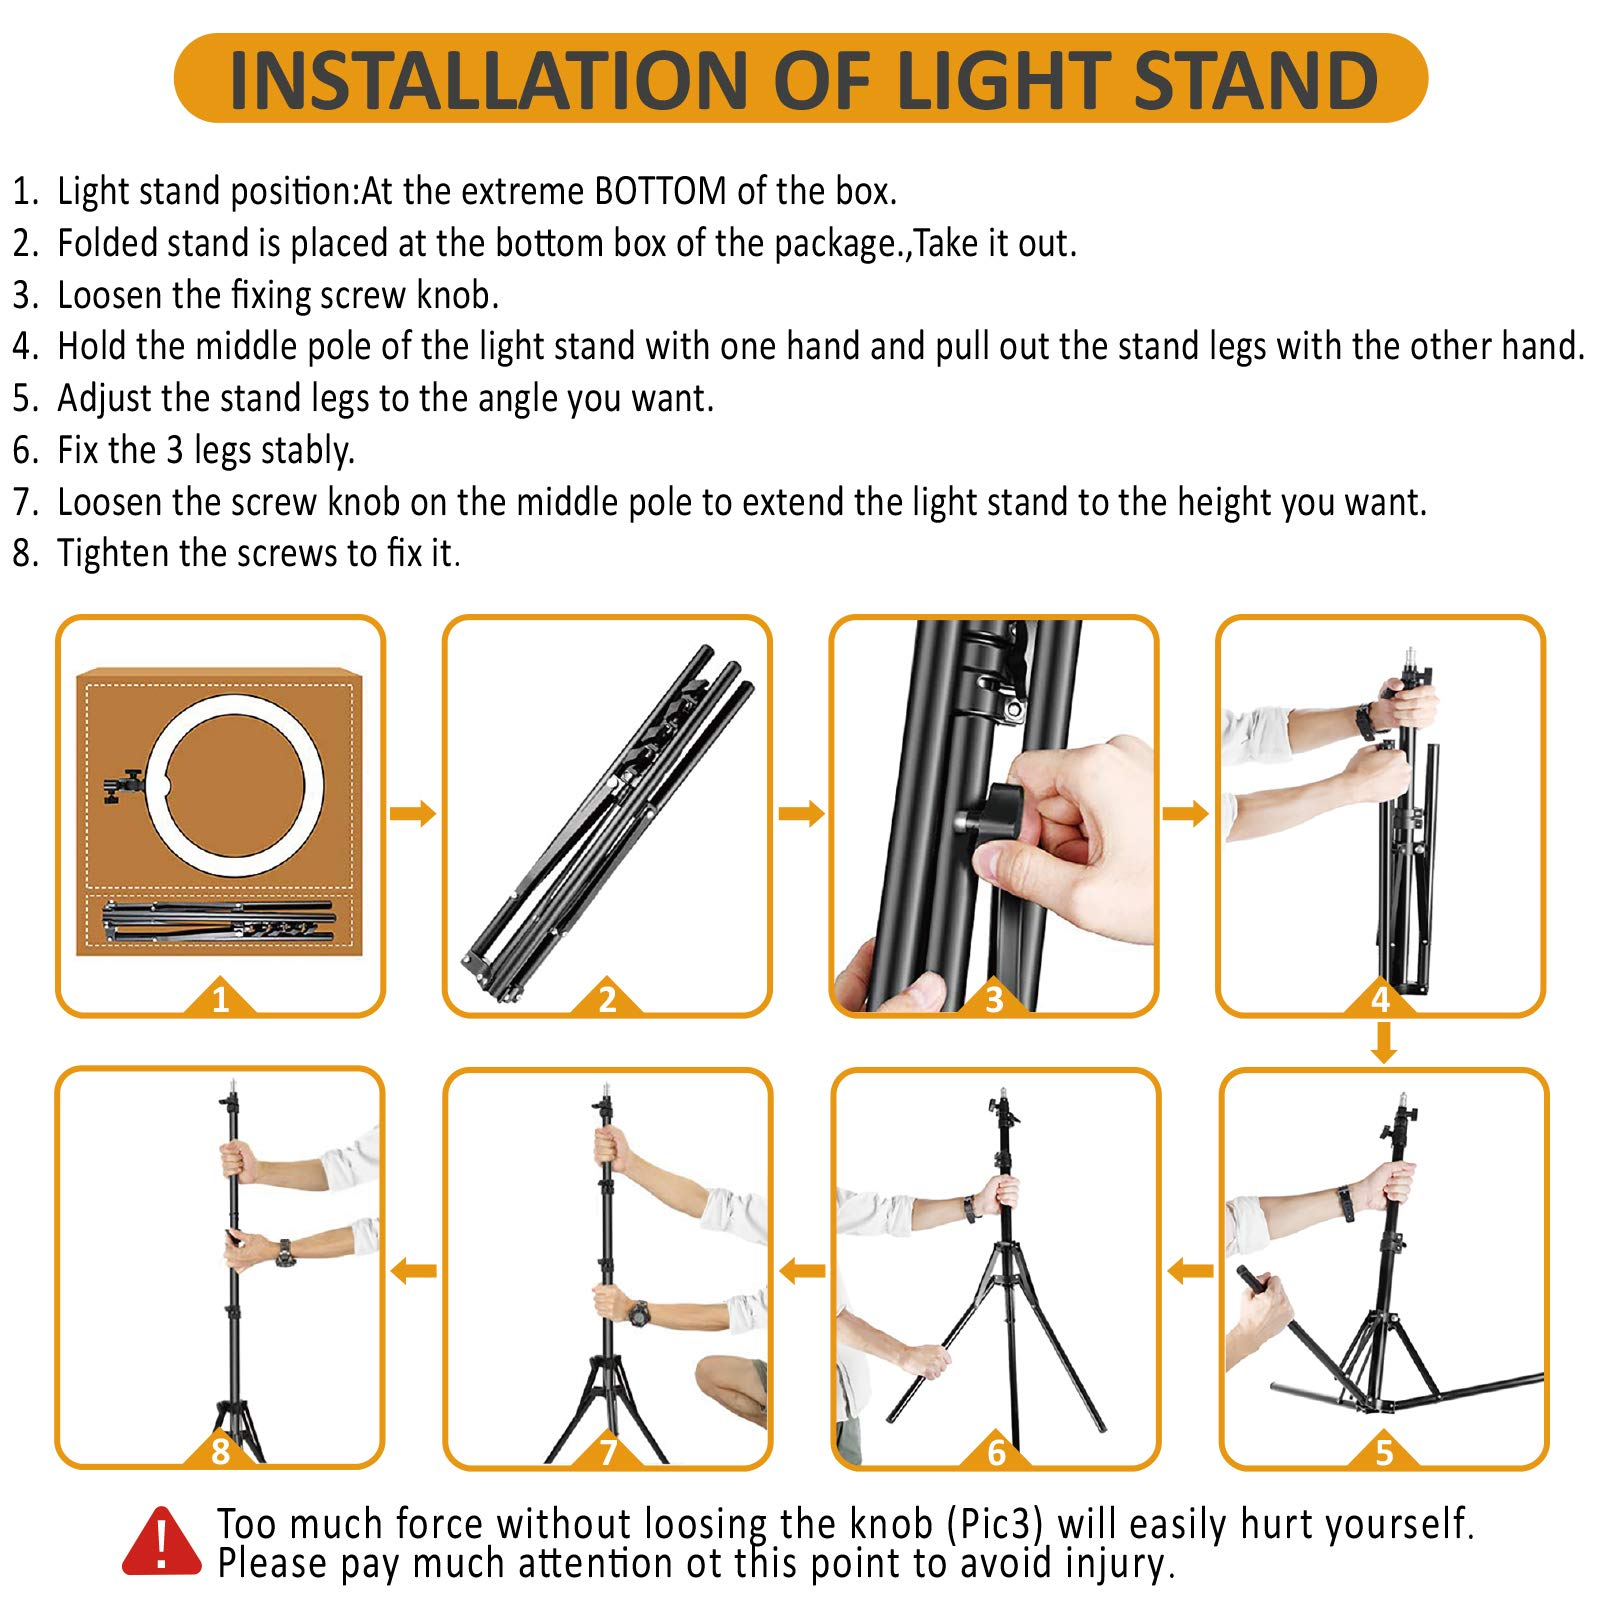 Ring Light Kit:18'' 48cm Outer 55W 5500K Dimmable LED Ring Light, Light Stand, Carrying Bag for Camera,Smartphone,YouTube,Self-Portrait Shooting by IVISII (Image #5)